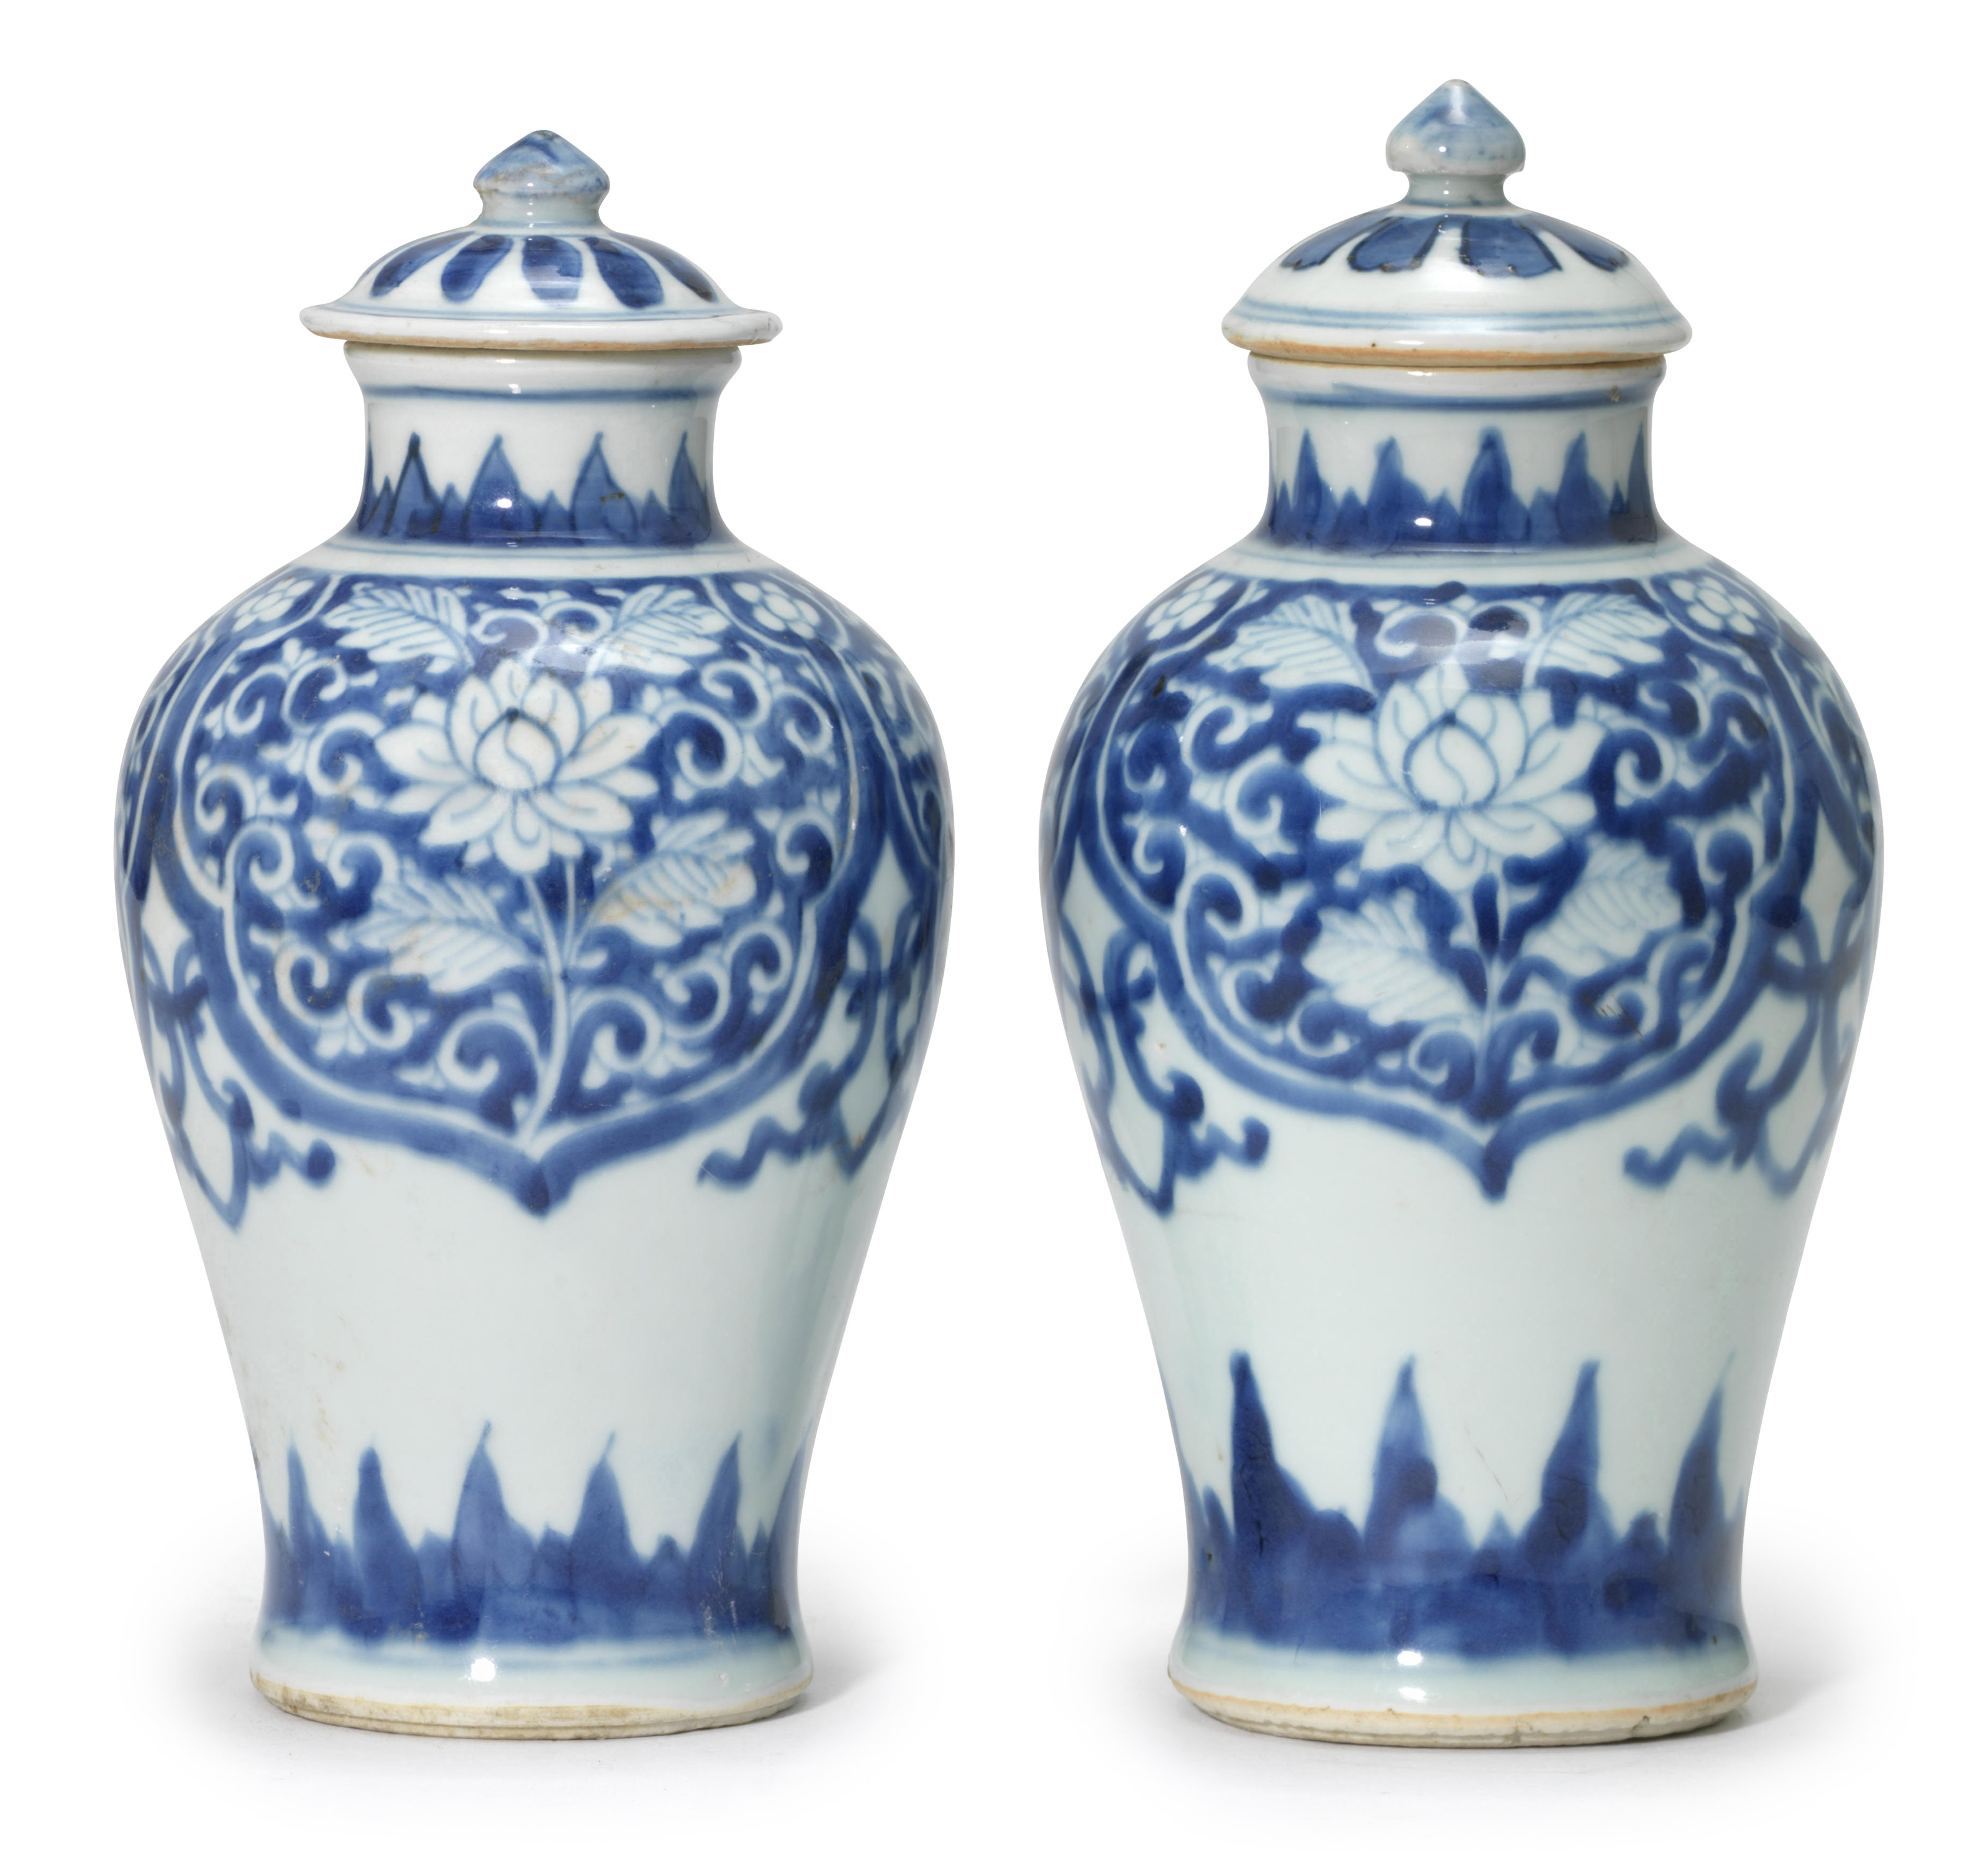 a near pair of small blue and white lotus baluster